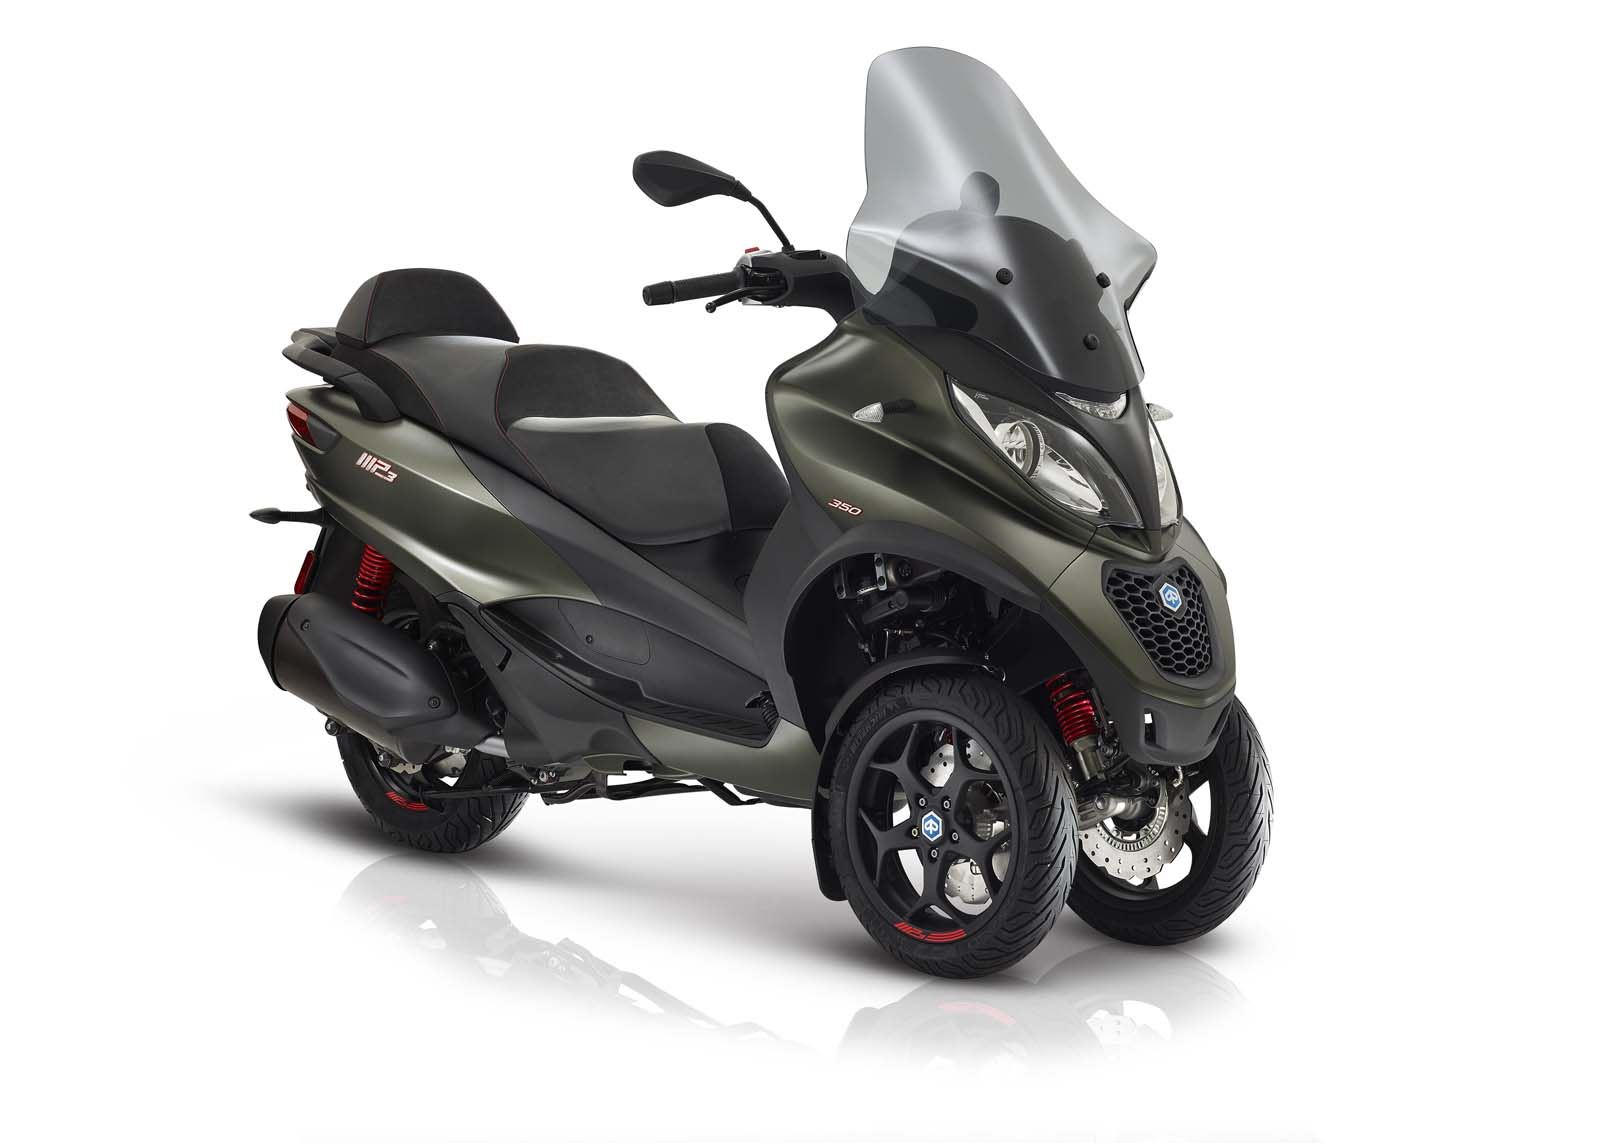 piaggio mp3 350 lt abs e4 business sport scooter acima 125 cc andar de moto. Black Bedroom Furniture Sets. Home Design Ideas